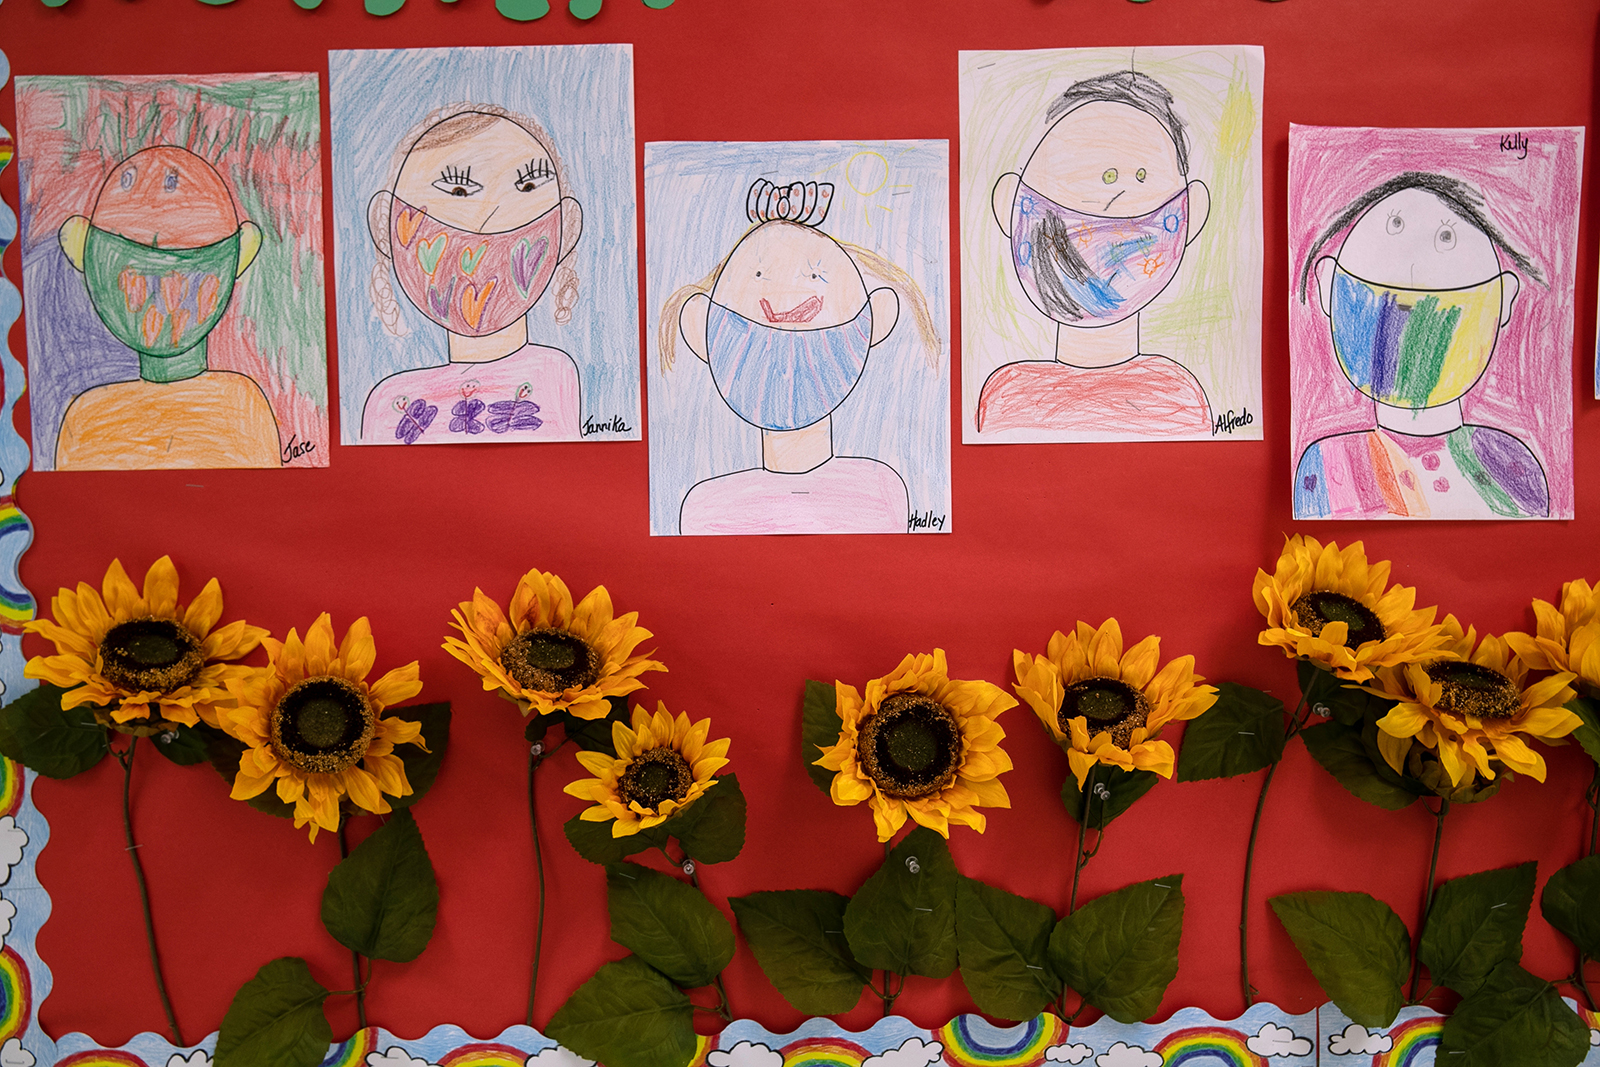 Drawings of children wearing masks adorn a hallway at Stark Elementary School on September 16, in Stamford, Connecticut.